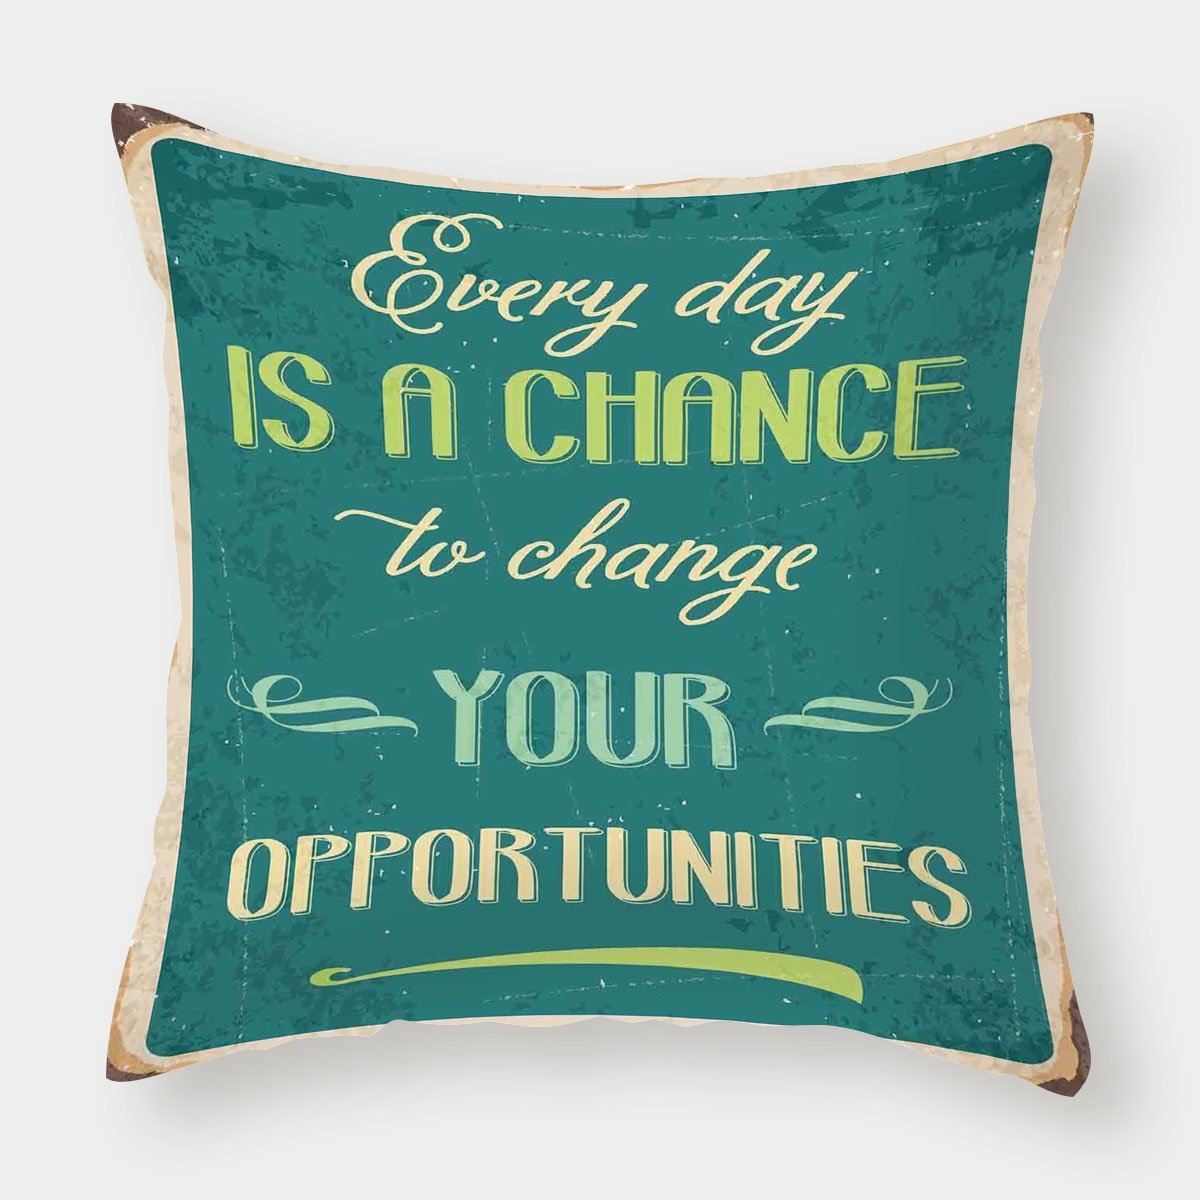 Microfiber Throw Pillow Cushion Cover,Lifestyle,Every Day is a Chance to Change Your Opportunities Quote Retro Poster Print,Jade Green Tan,Decorative Square Accent Pillow Case by iPrint (Image #1)